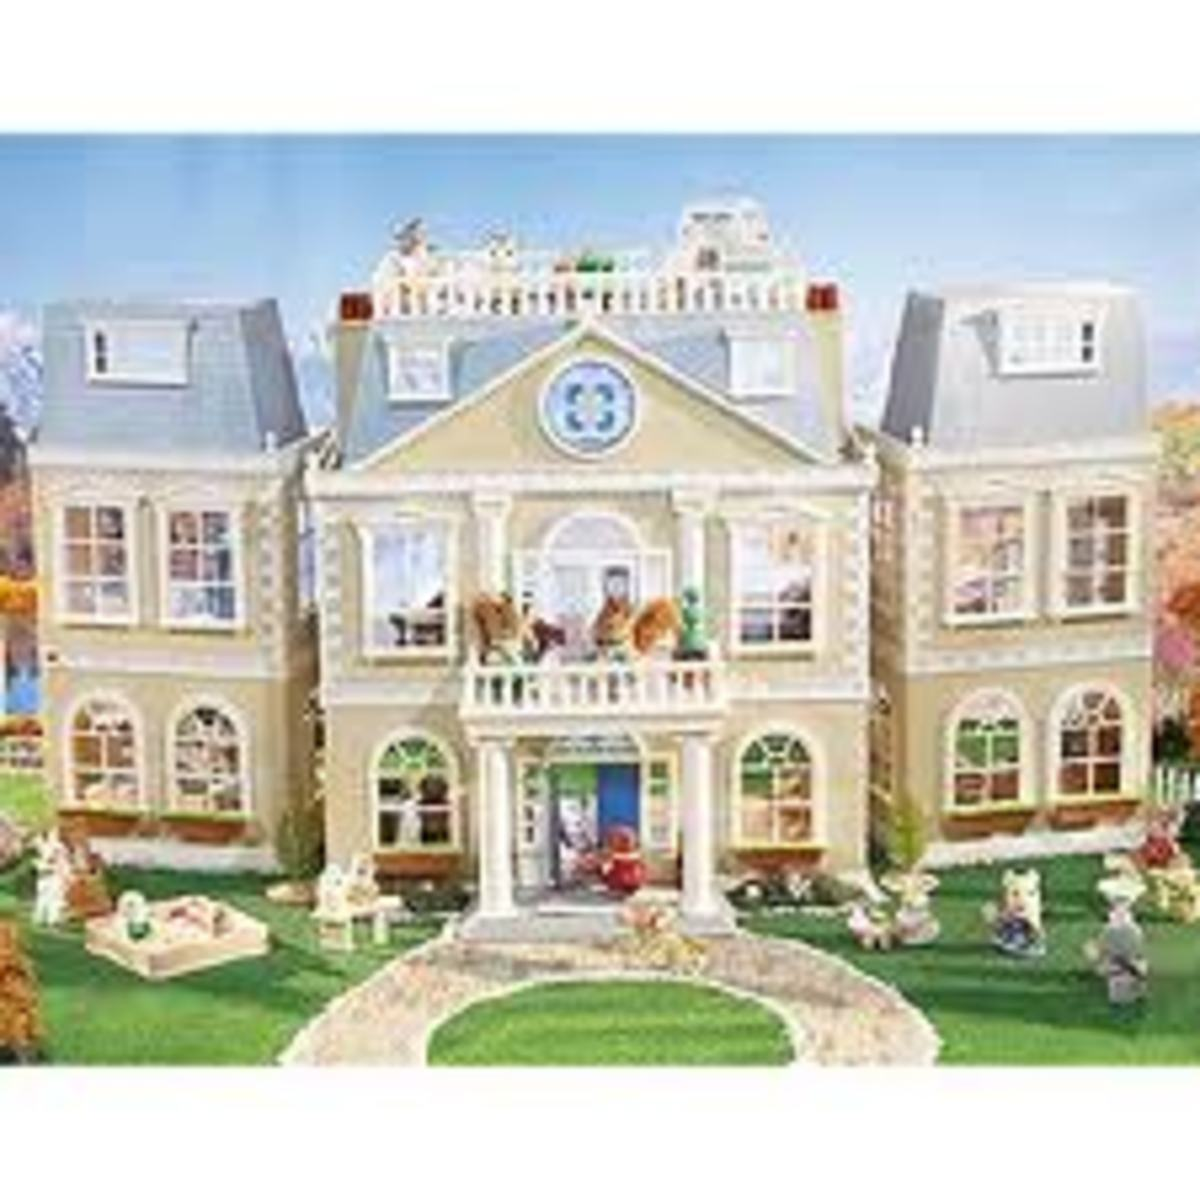 Calico Critters House - Review Where to Buy